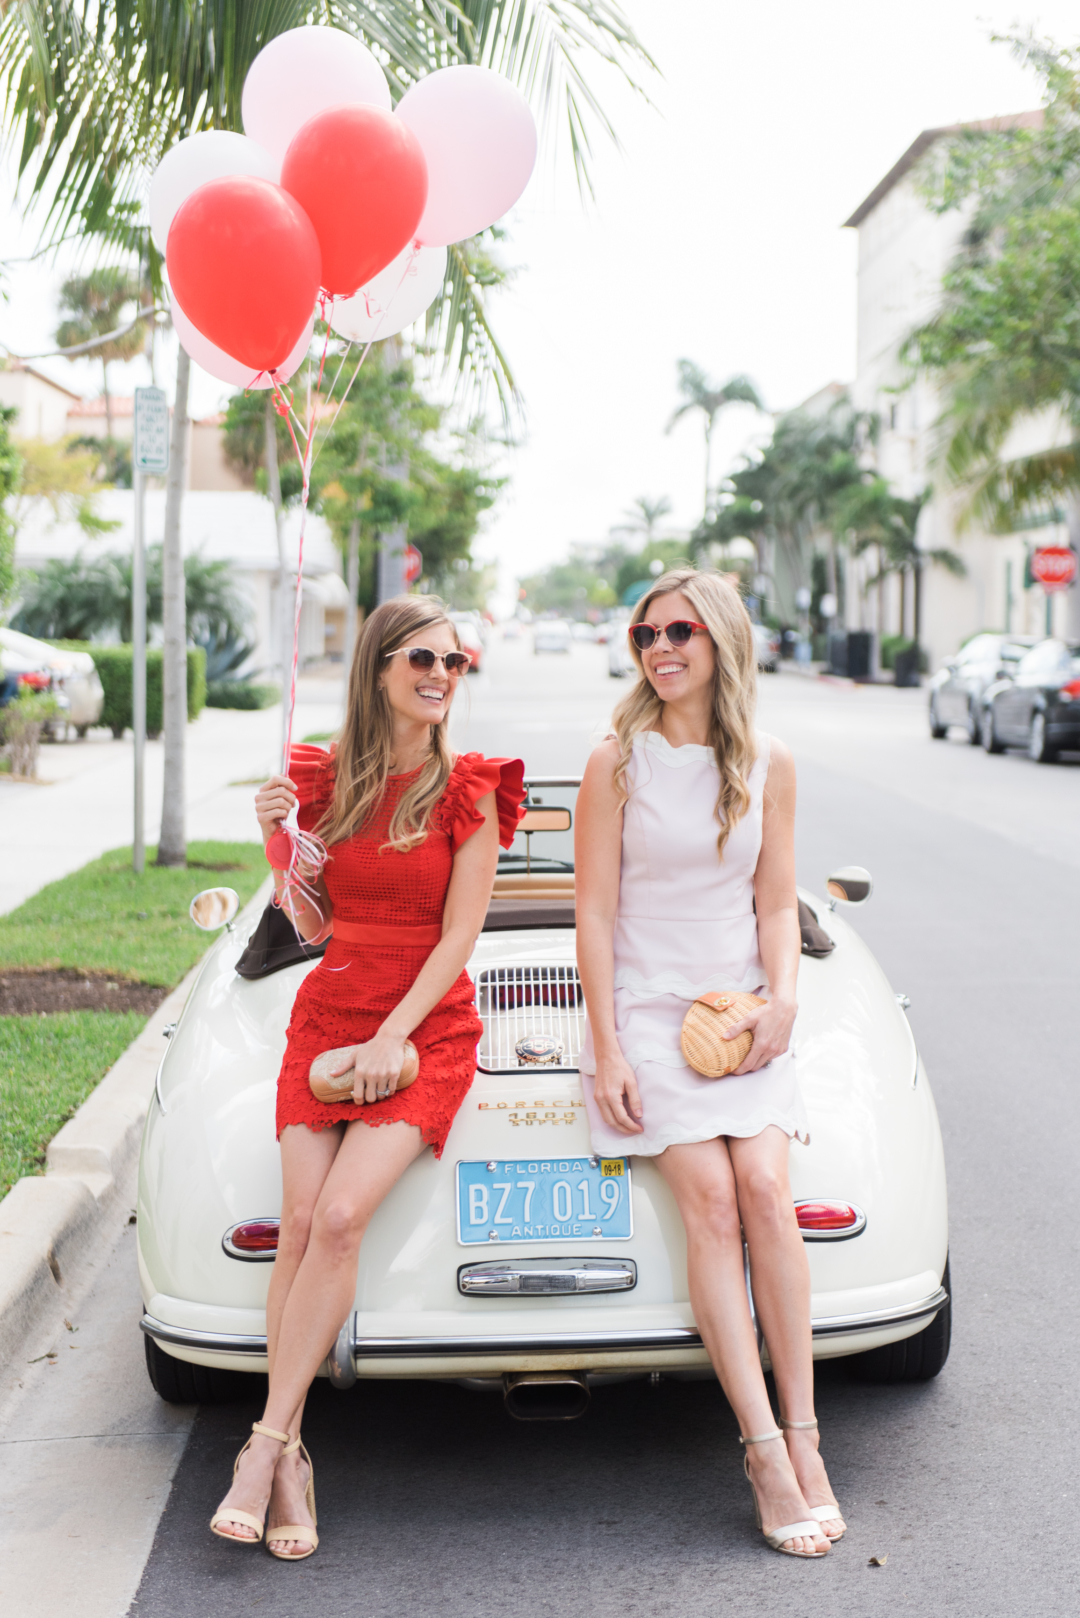 Fashion: Valentine's Dresses with Palm Beach Lately